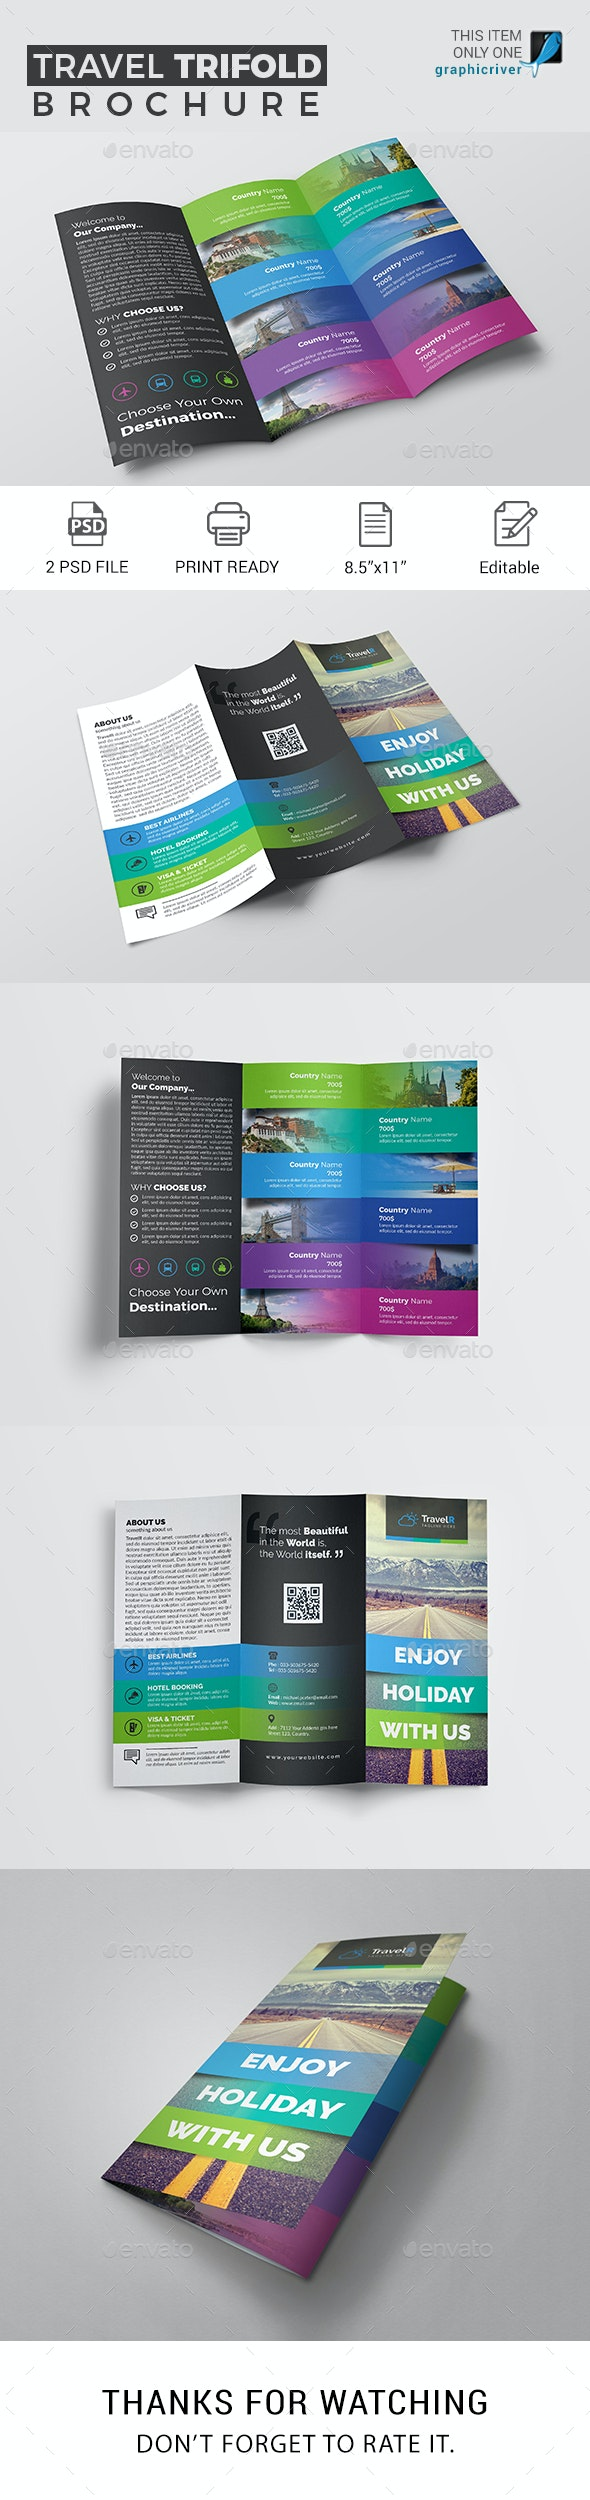 Travel Trifold Brochure - Corporate Brochures